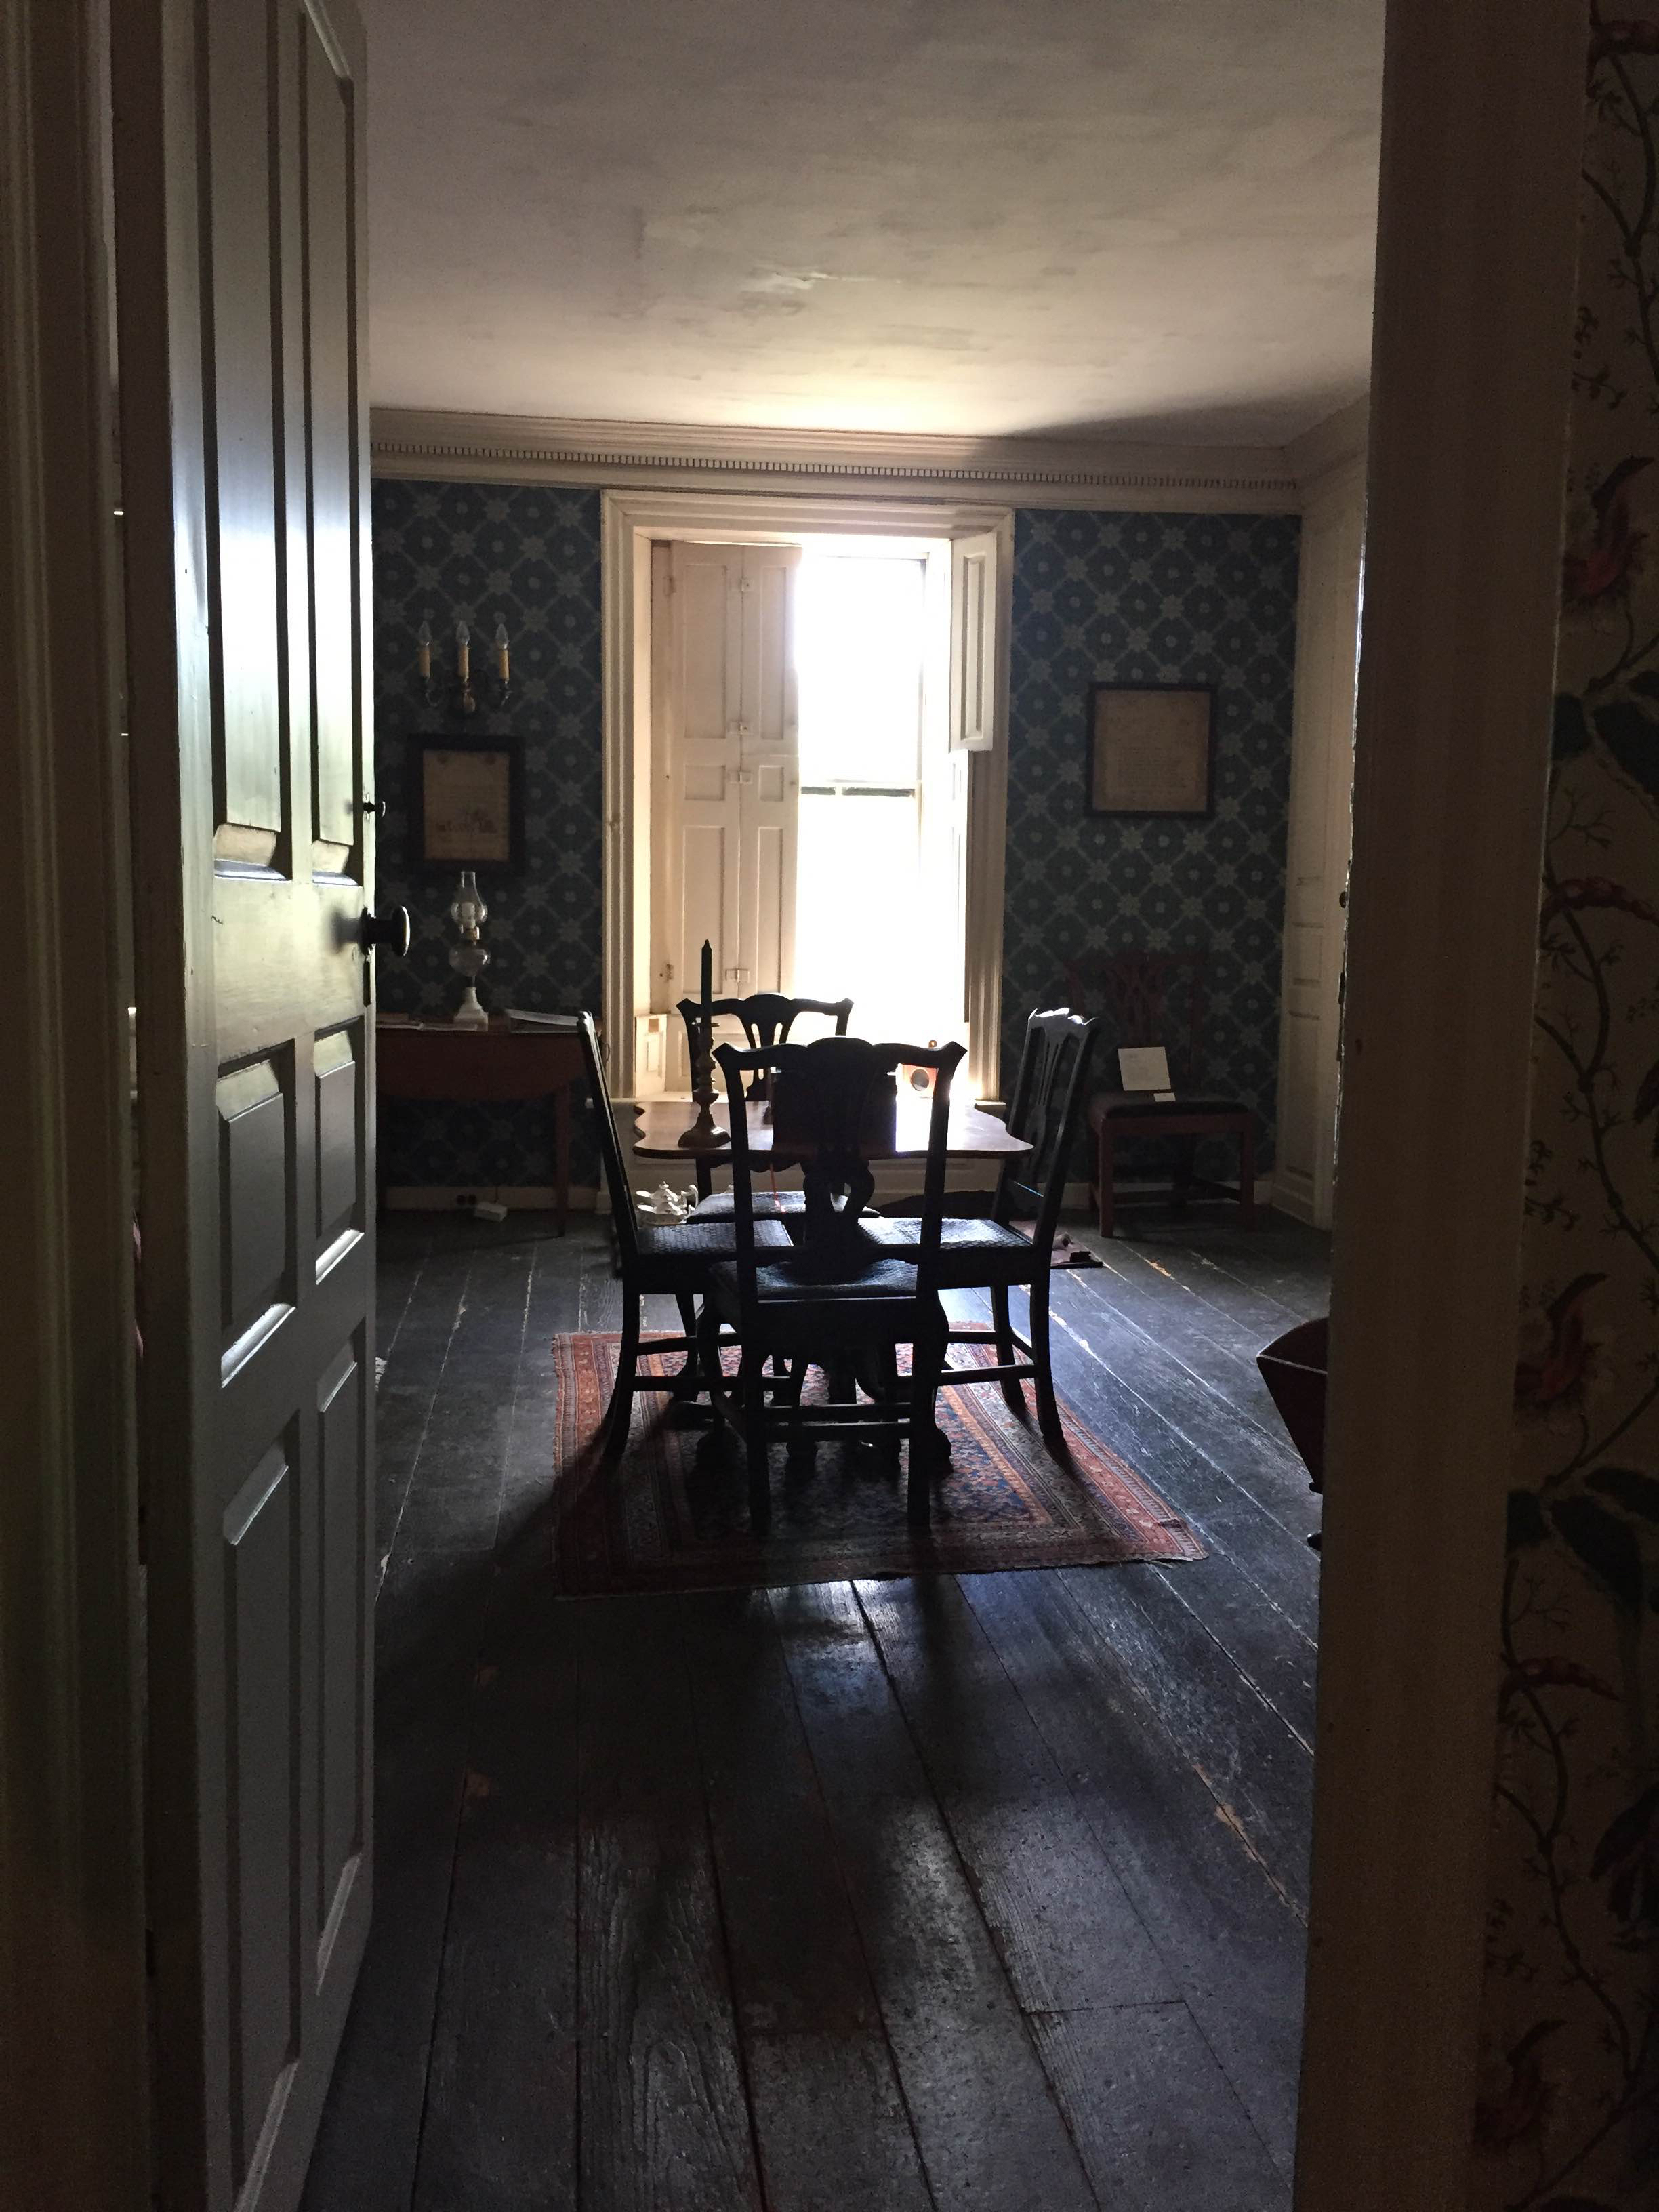 A peek inside the Loring-Greenough Hosue